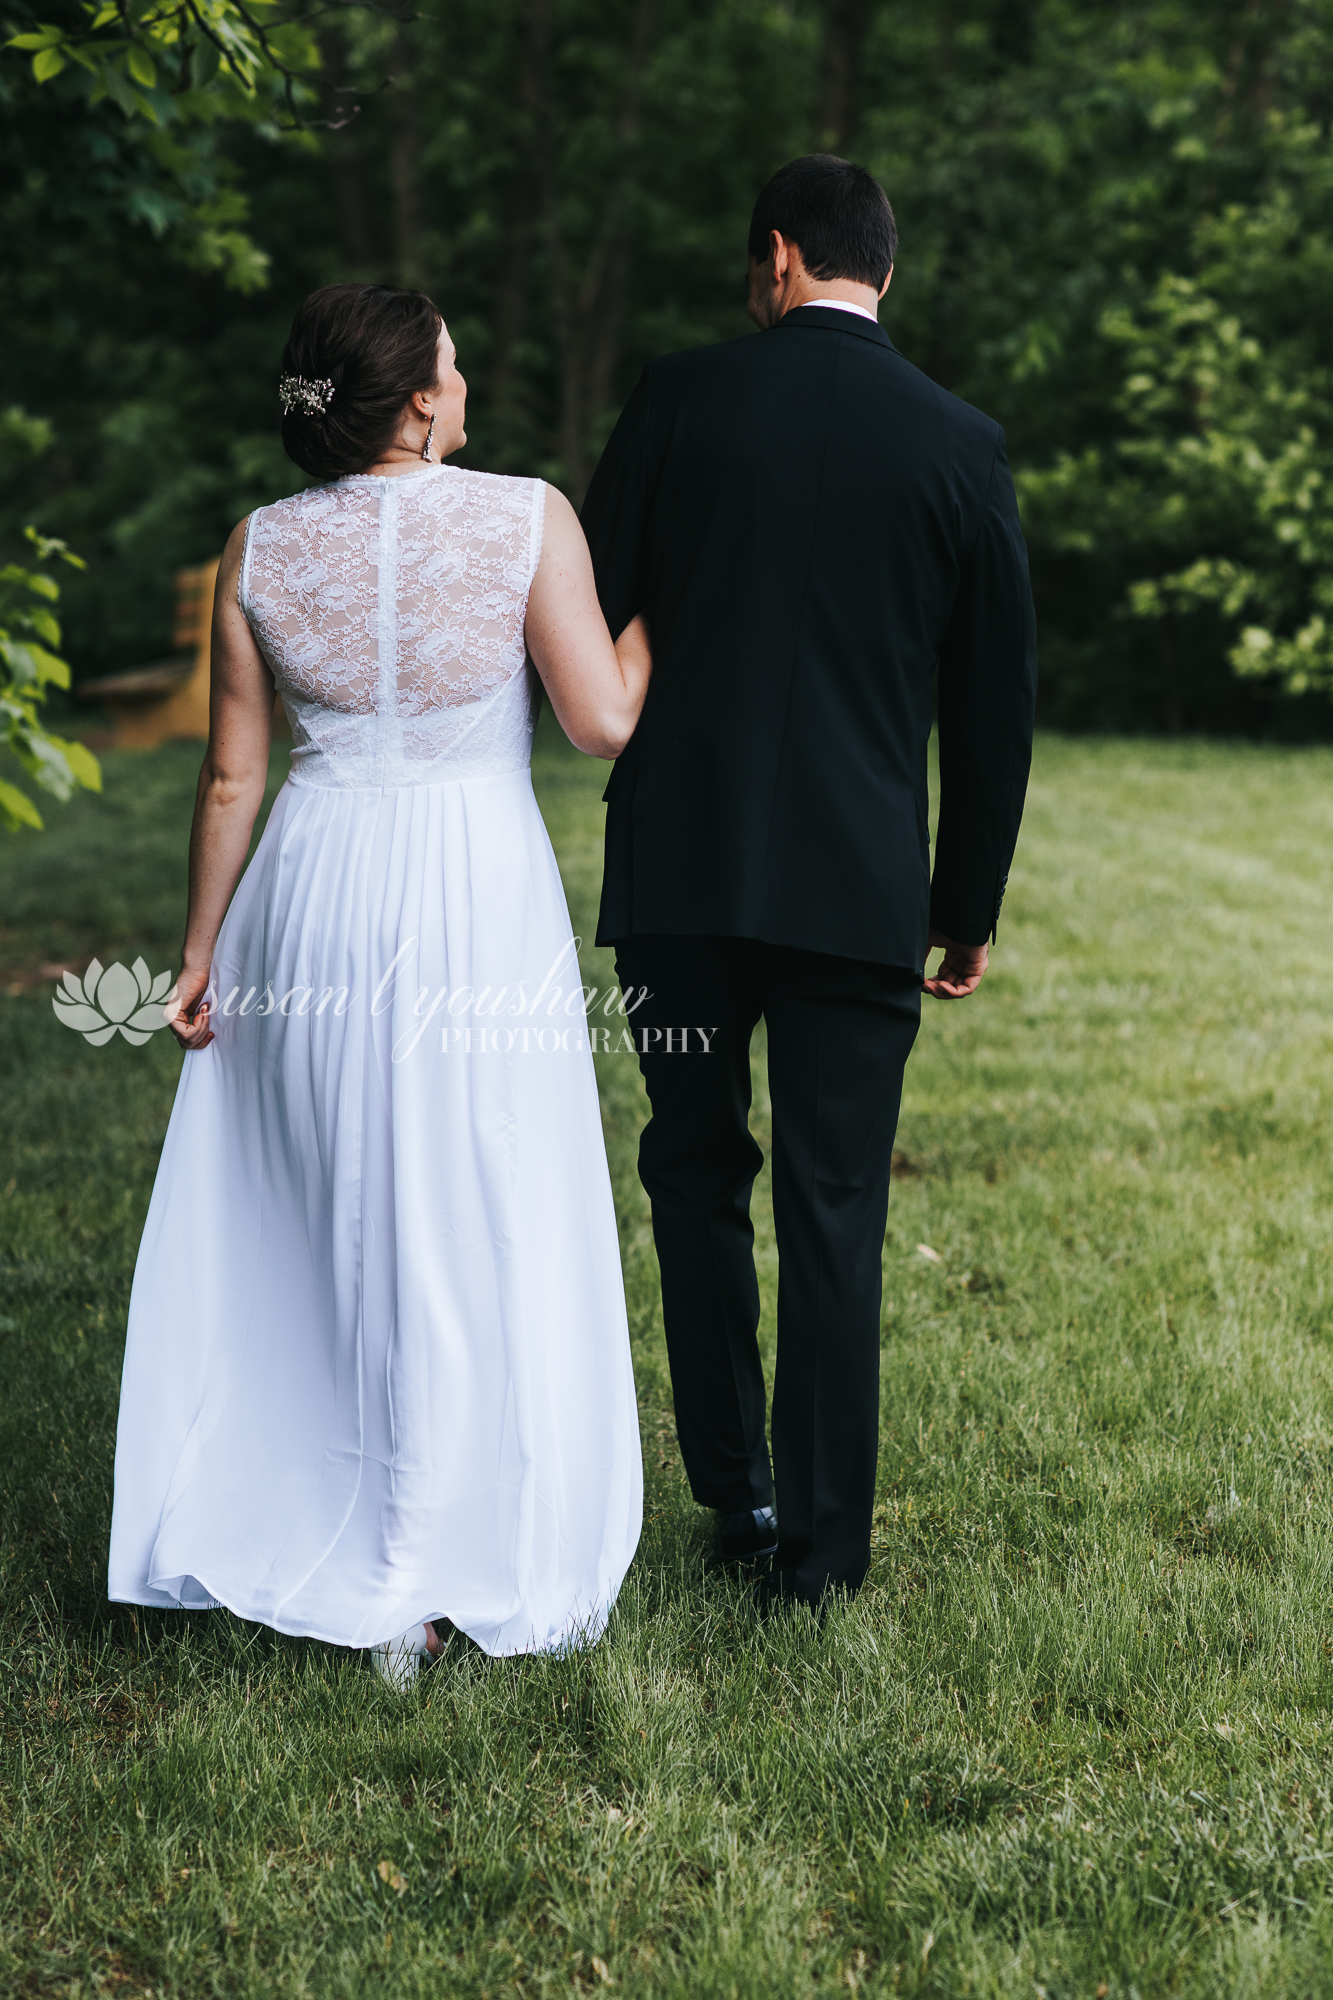 Adena and  Erik Wedding 05-17-2019 SLY Photography-30.jpg